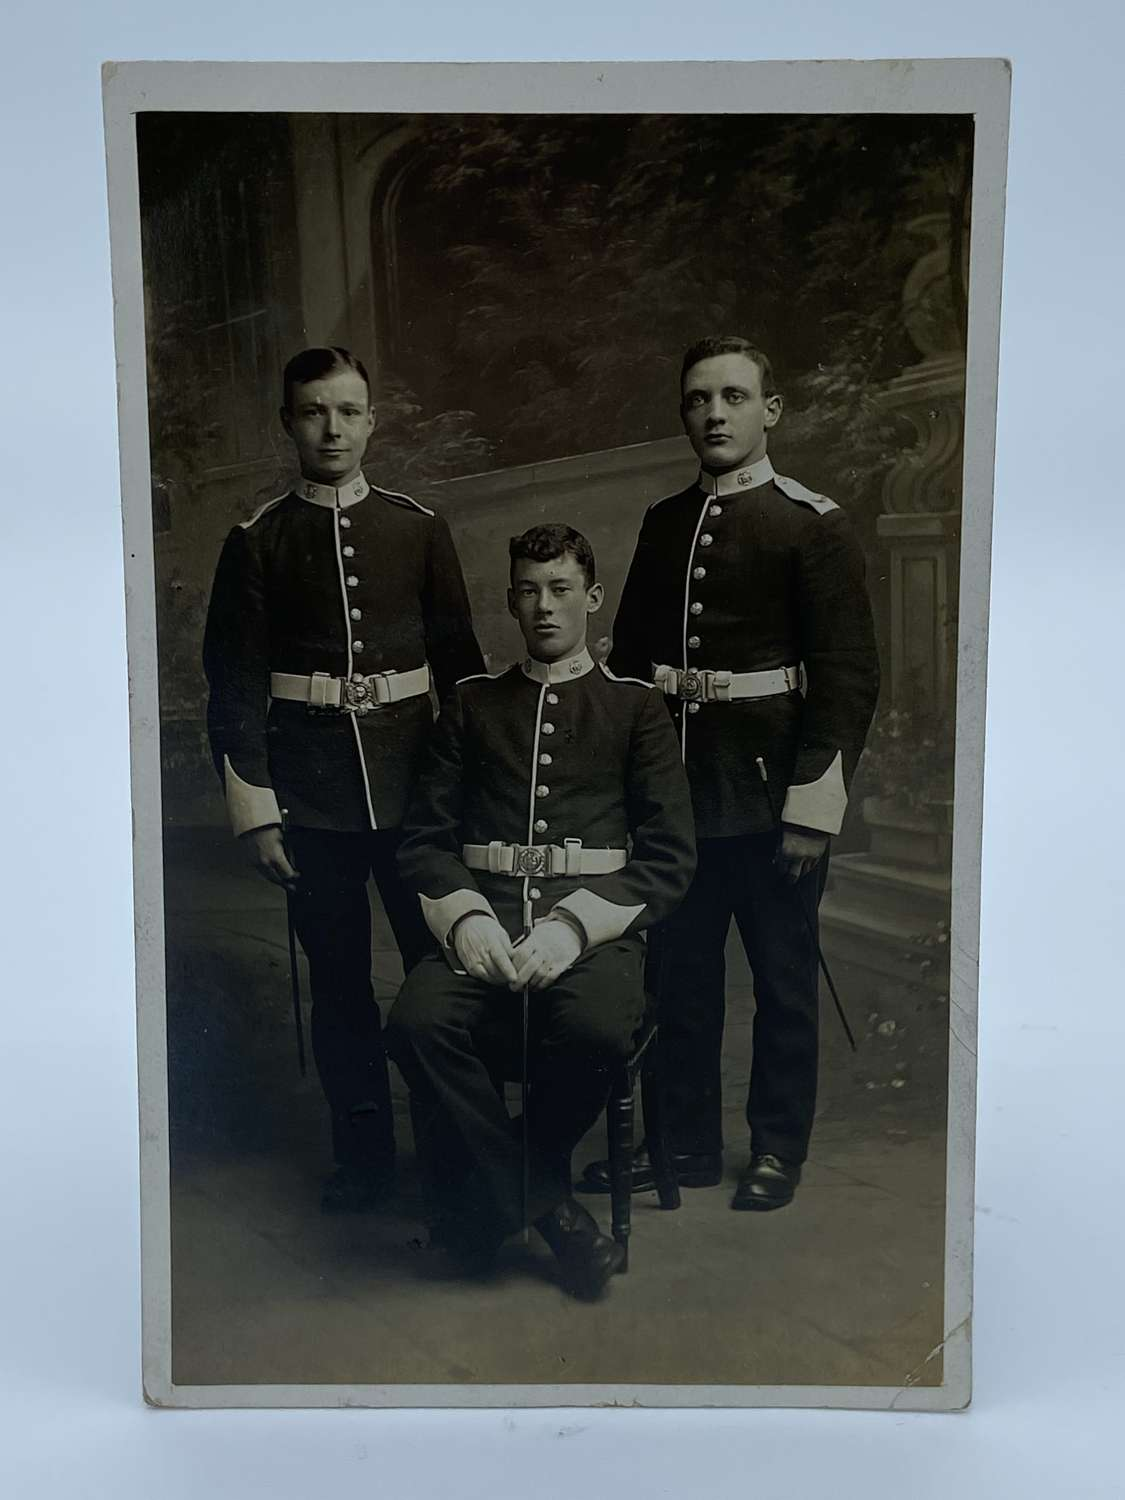 WW1 Grenadier Guards In Dress Uniform Photograph